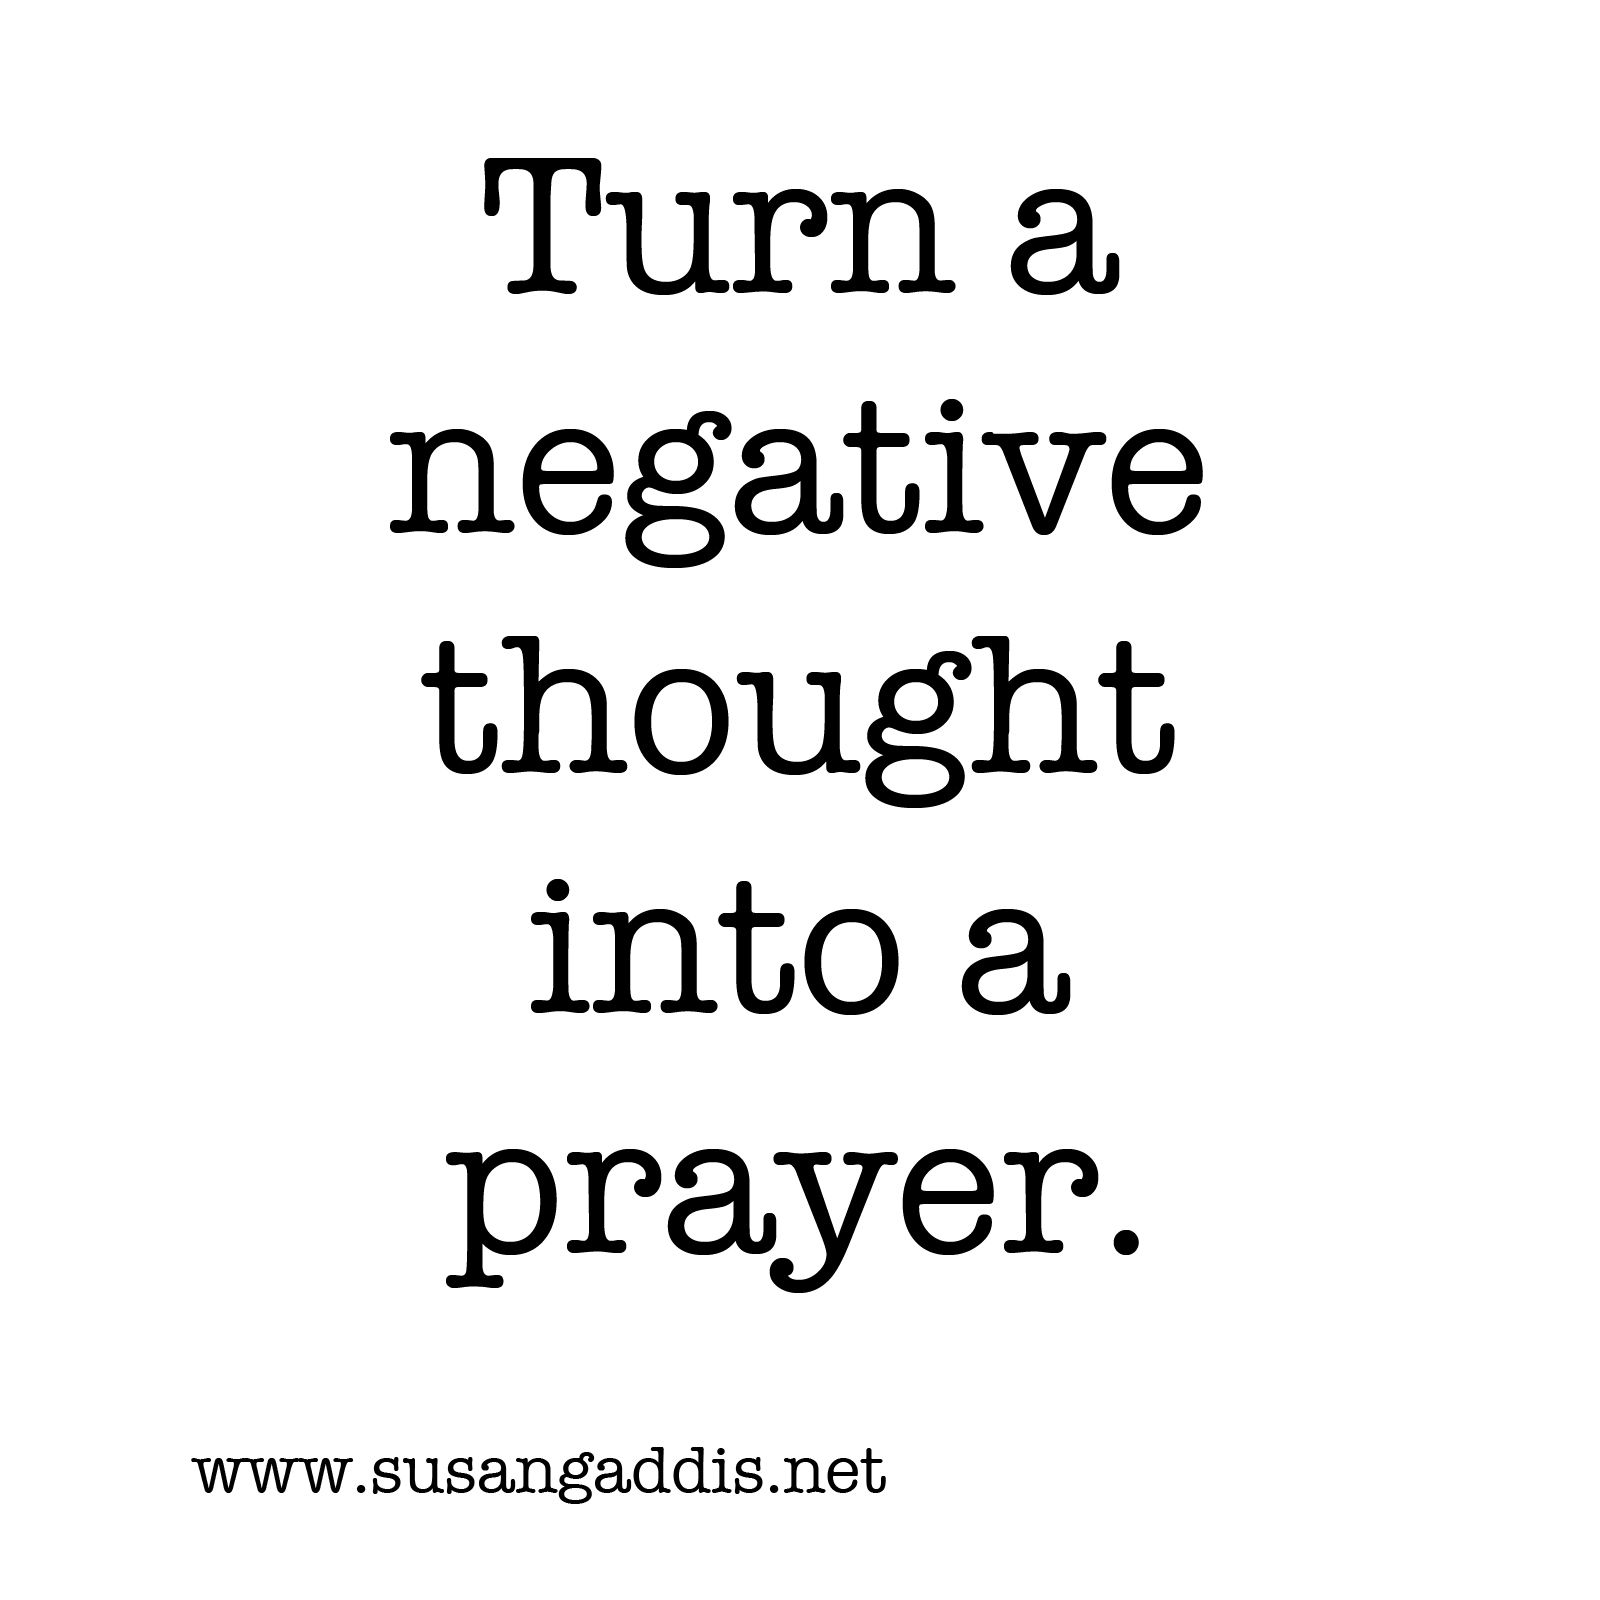 "Turning A Bad Situation Into A Good One Quotes: ""Turn A Negative Thought Into A Prayer."" -Susan Gaddis"